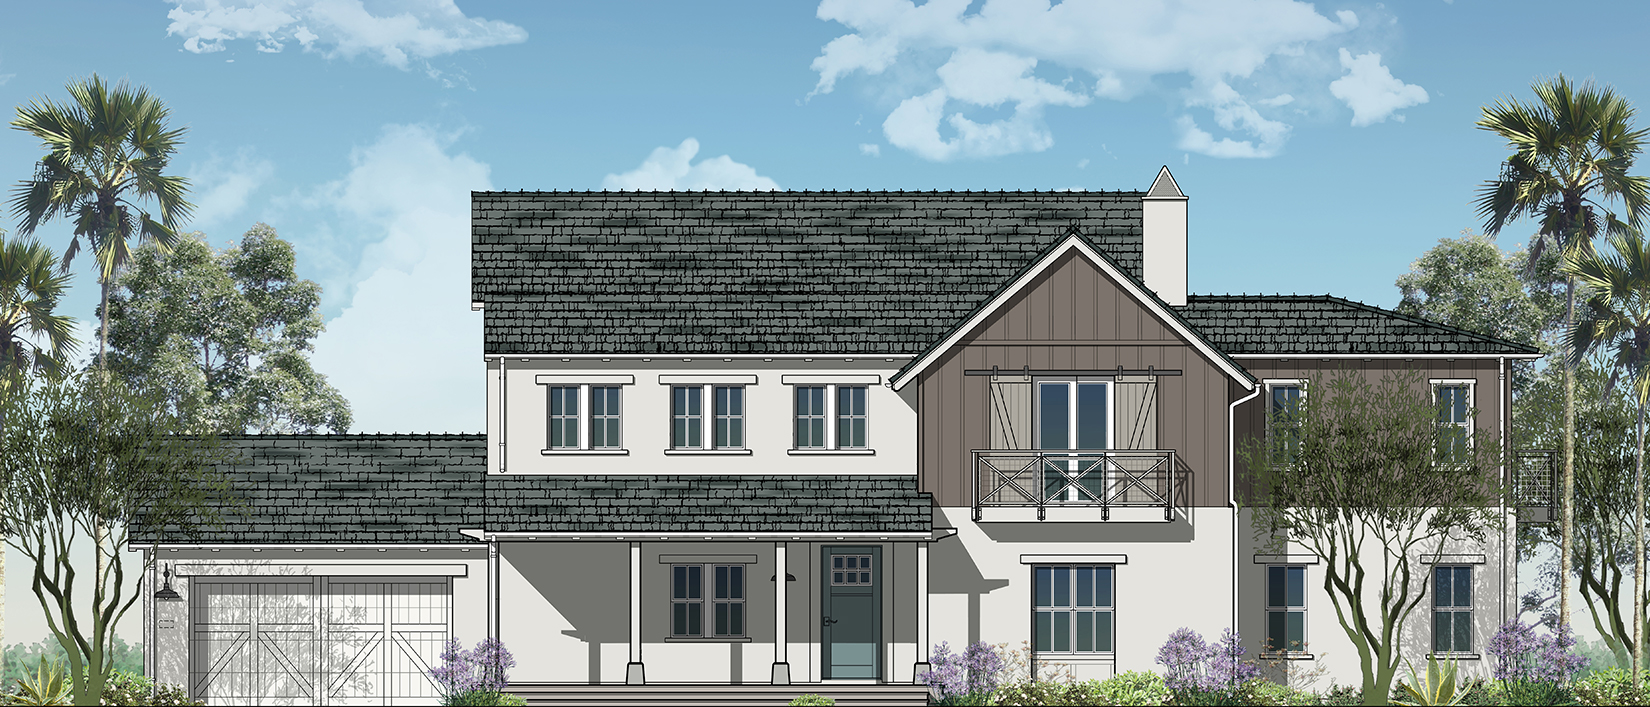 17066_A6A-ELEV-Front-Elevation-1650x707.jpg